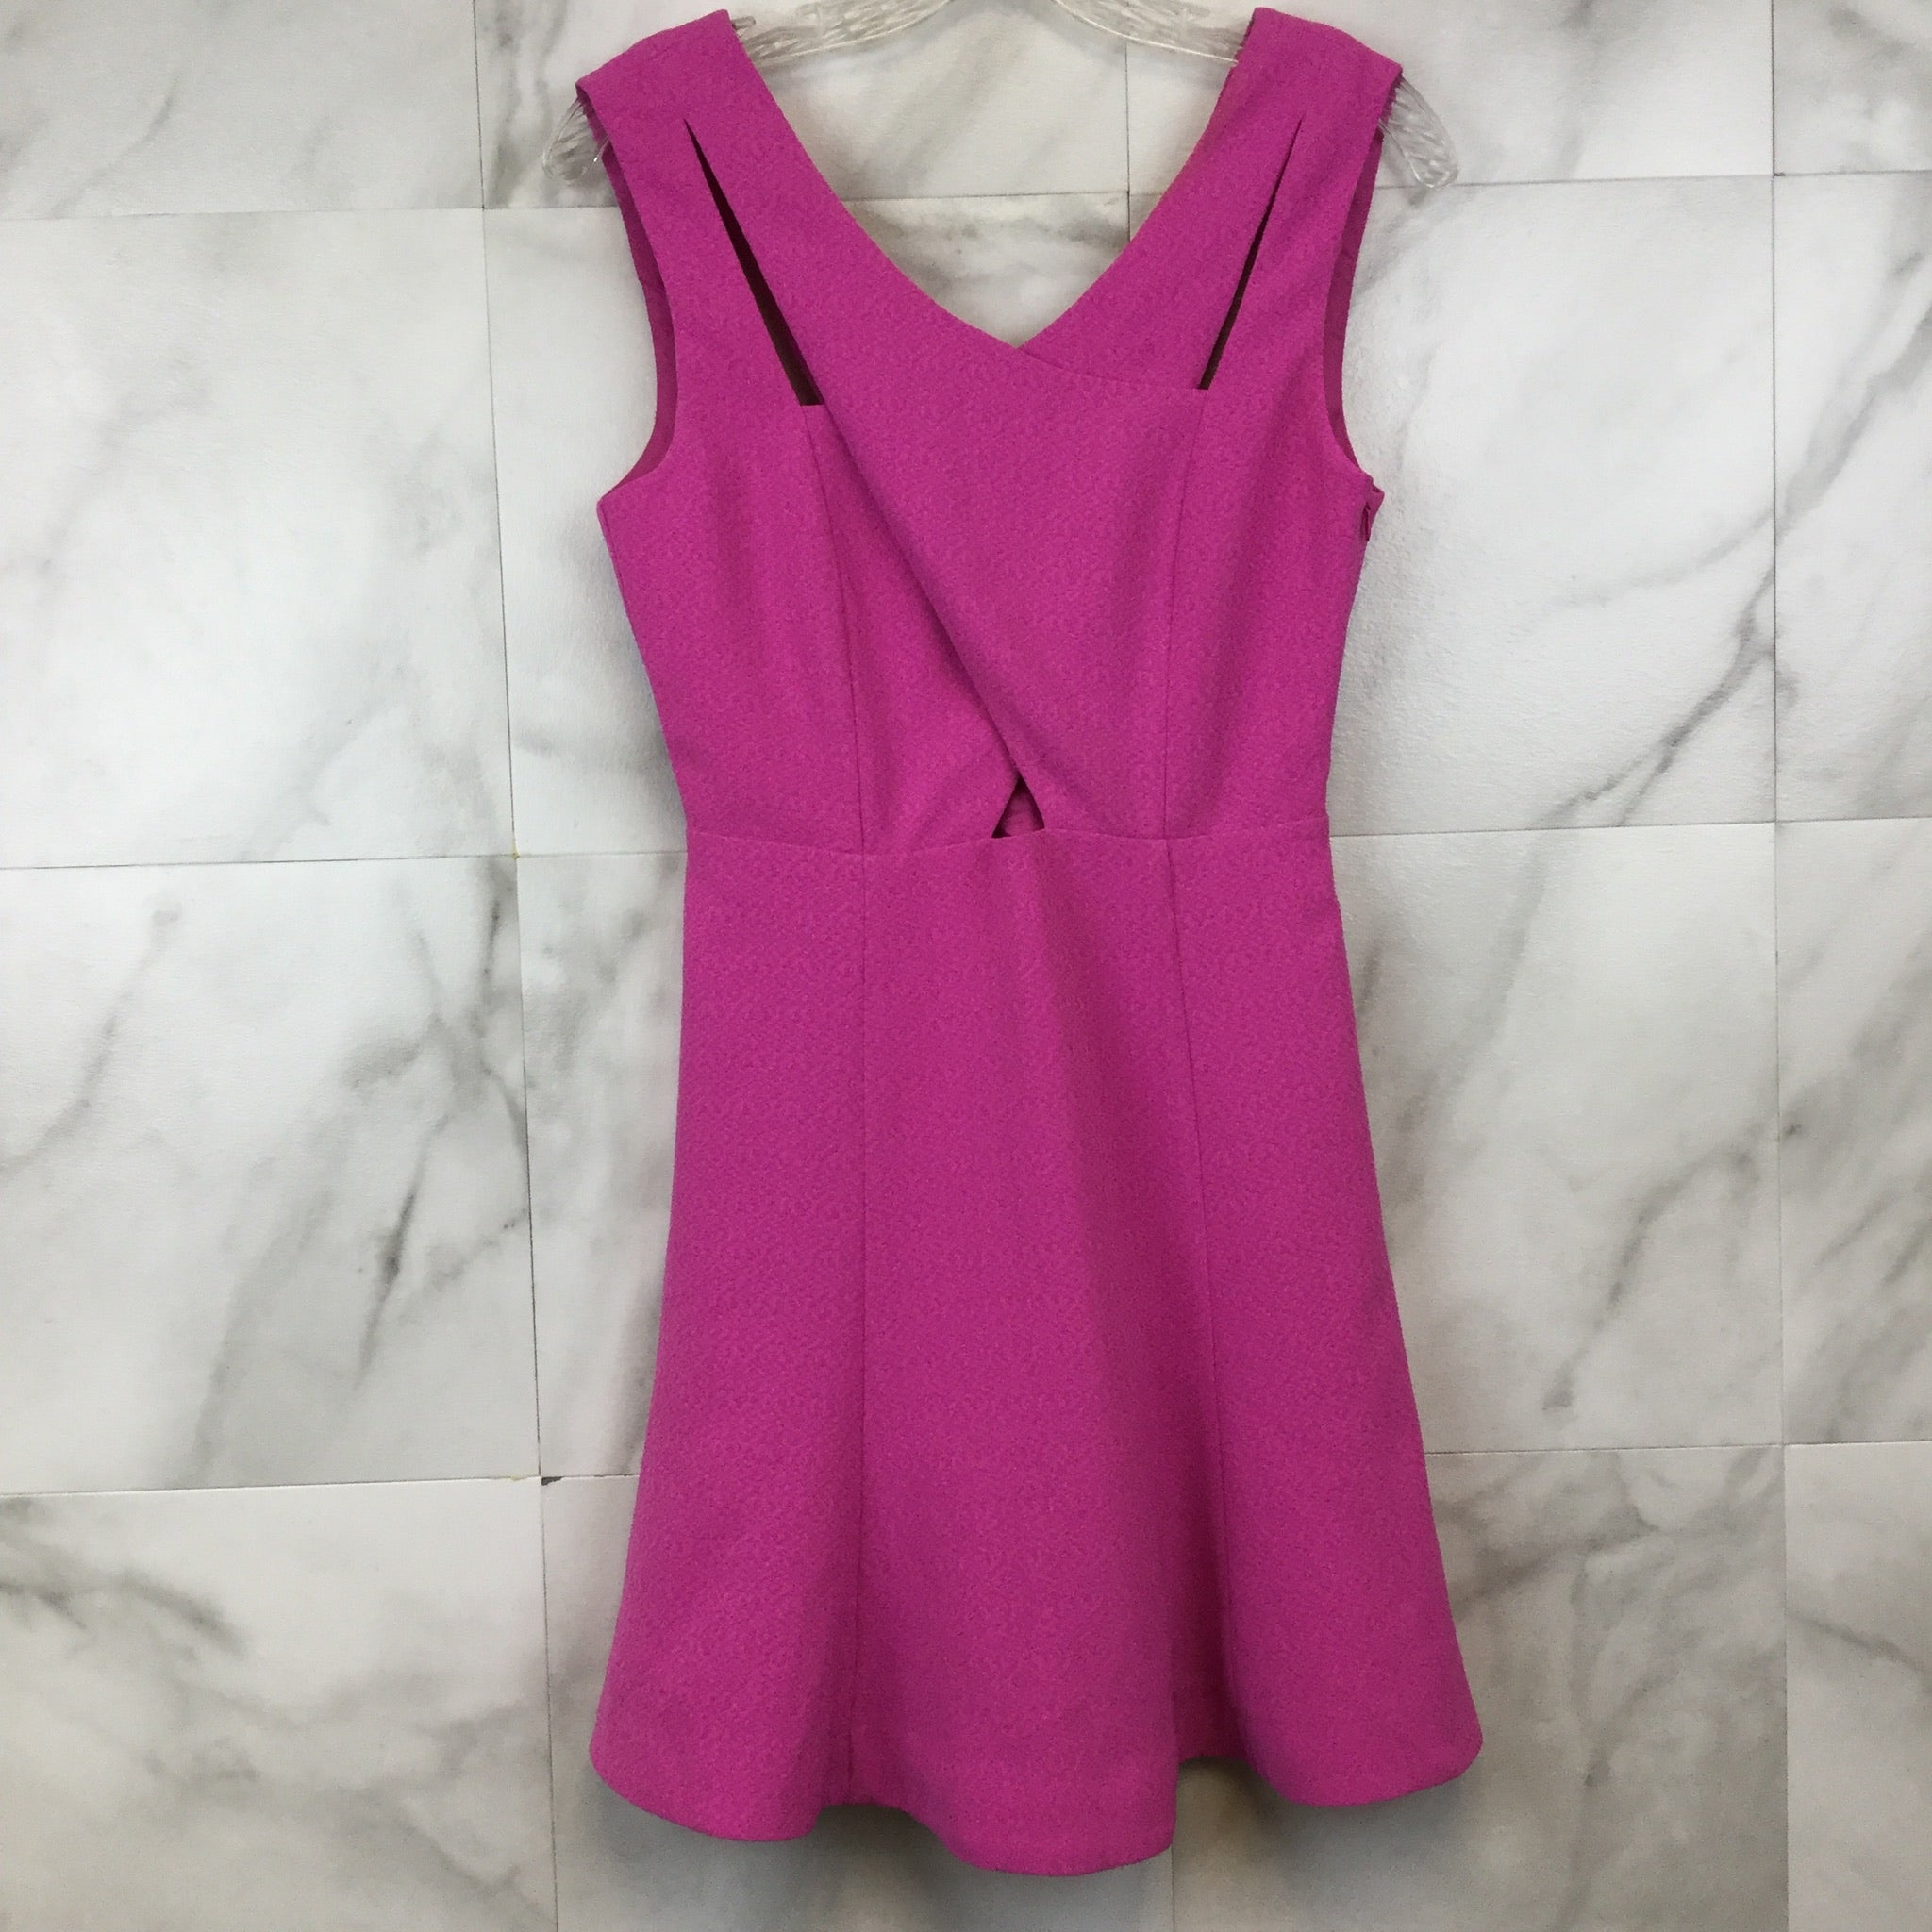 J.O.A. Fit and Flare Pink Dress- size S